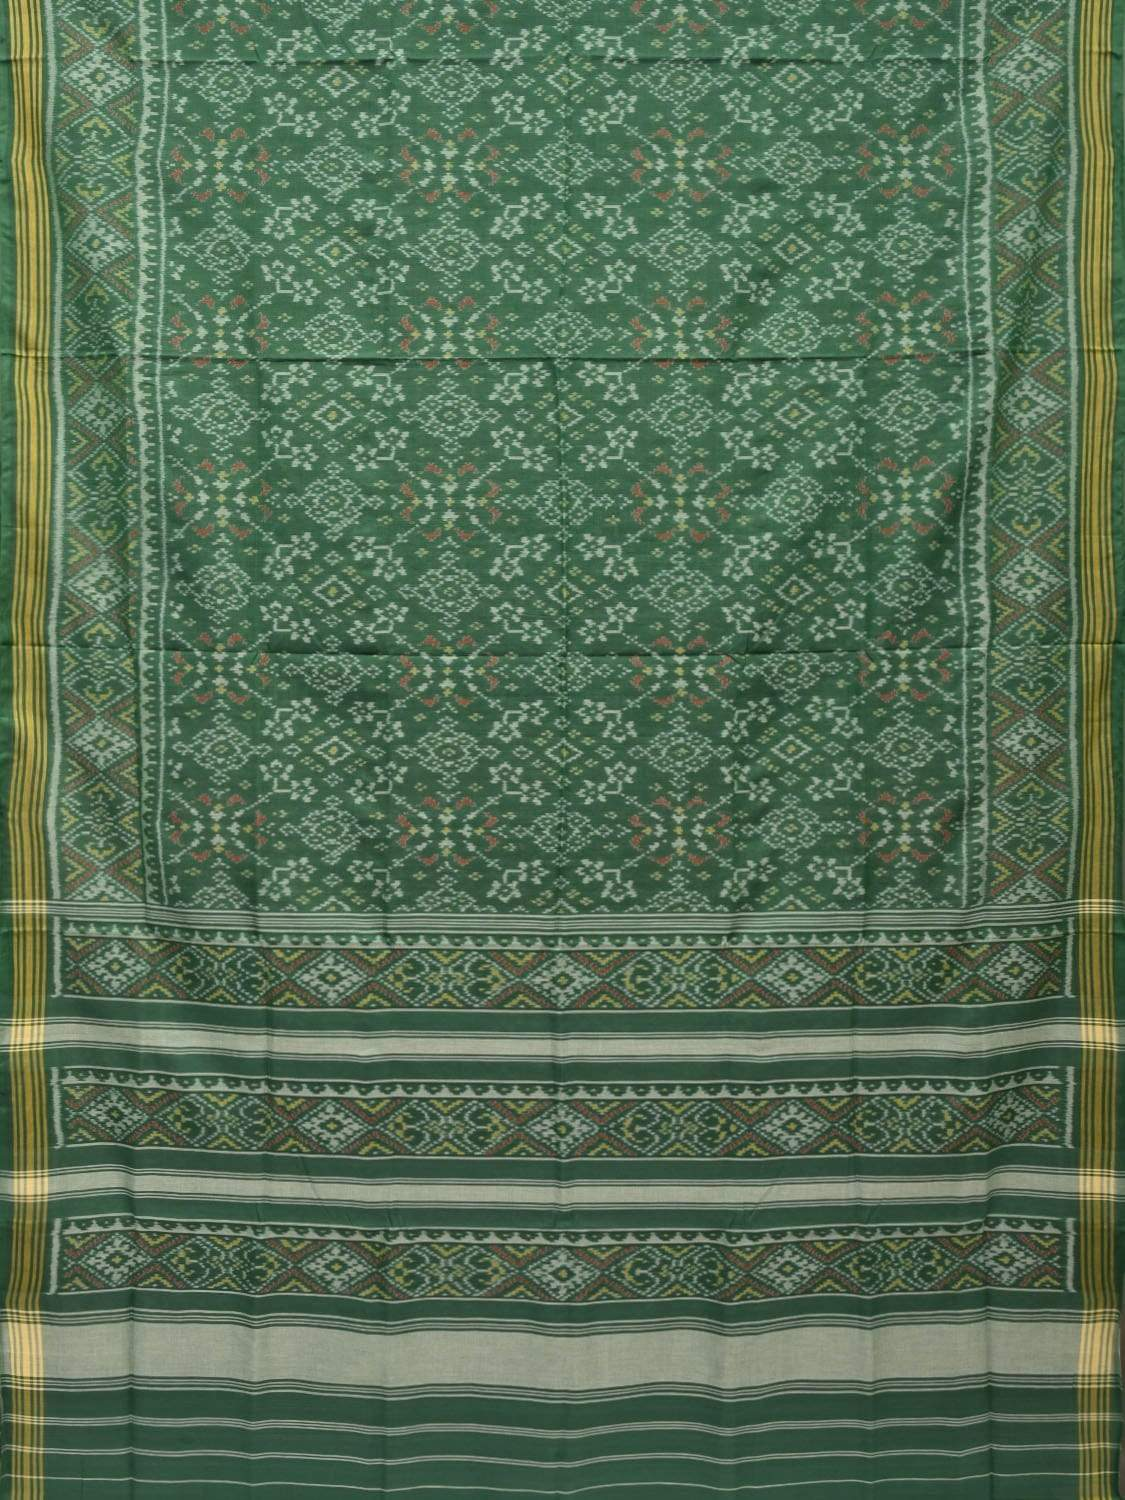 Green Pochampally Ikat Cotton Handloom Saree with All Over Design i0550